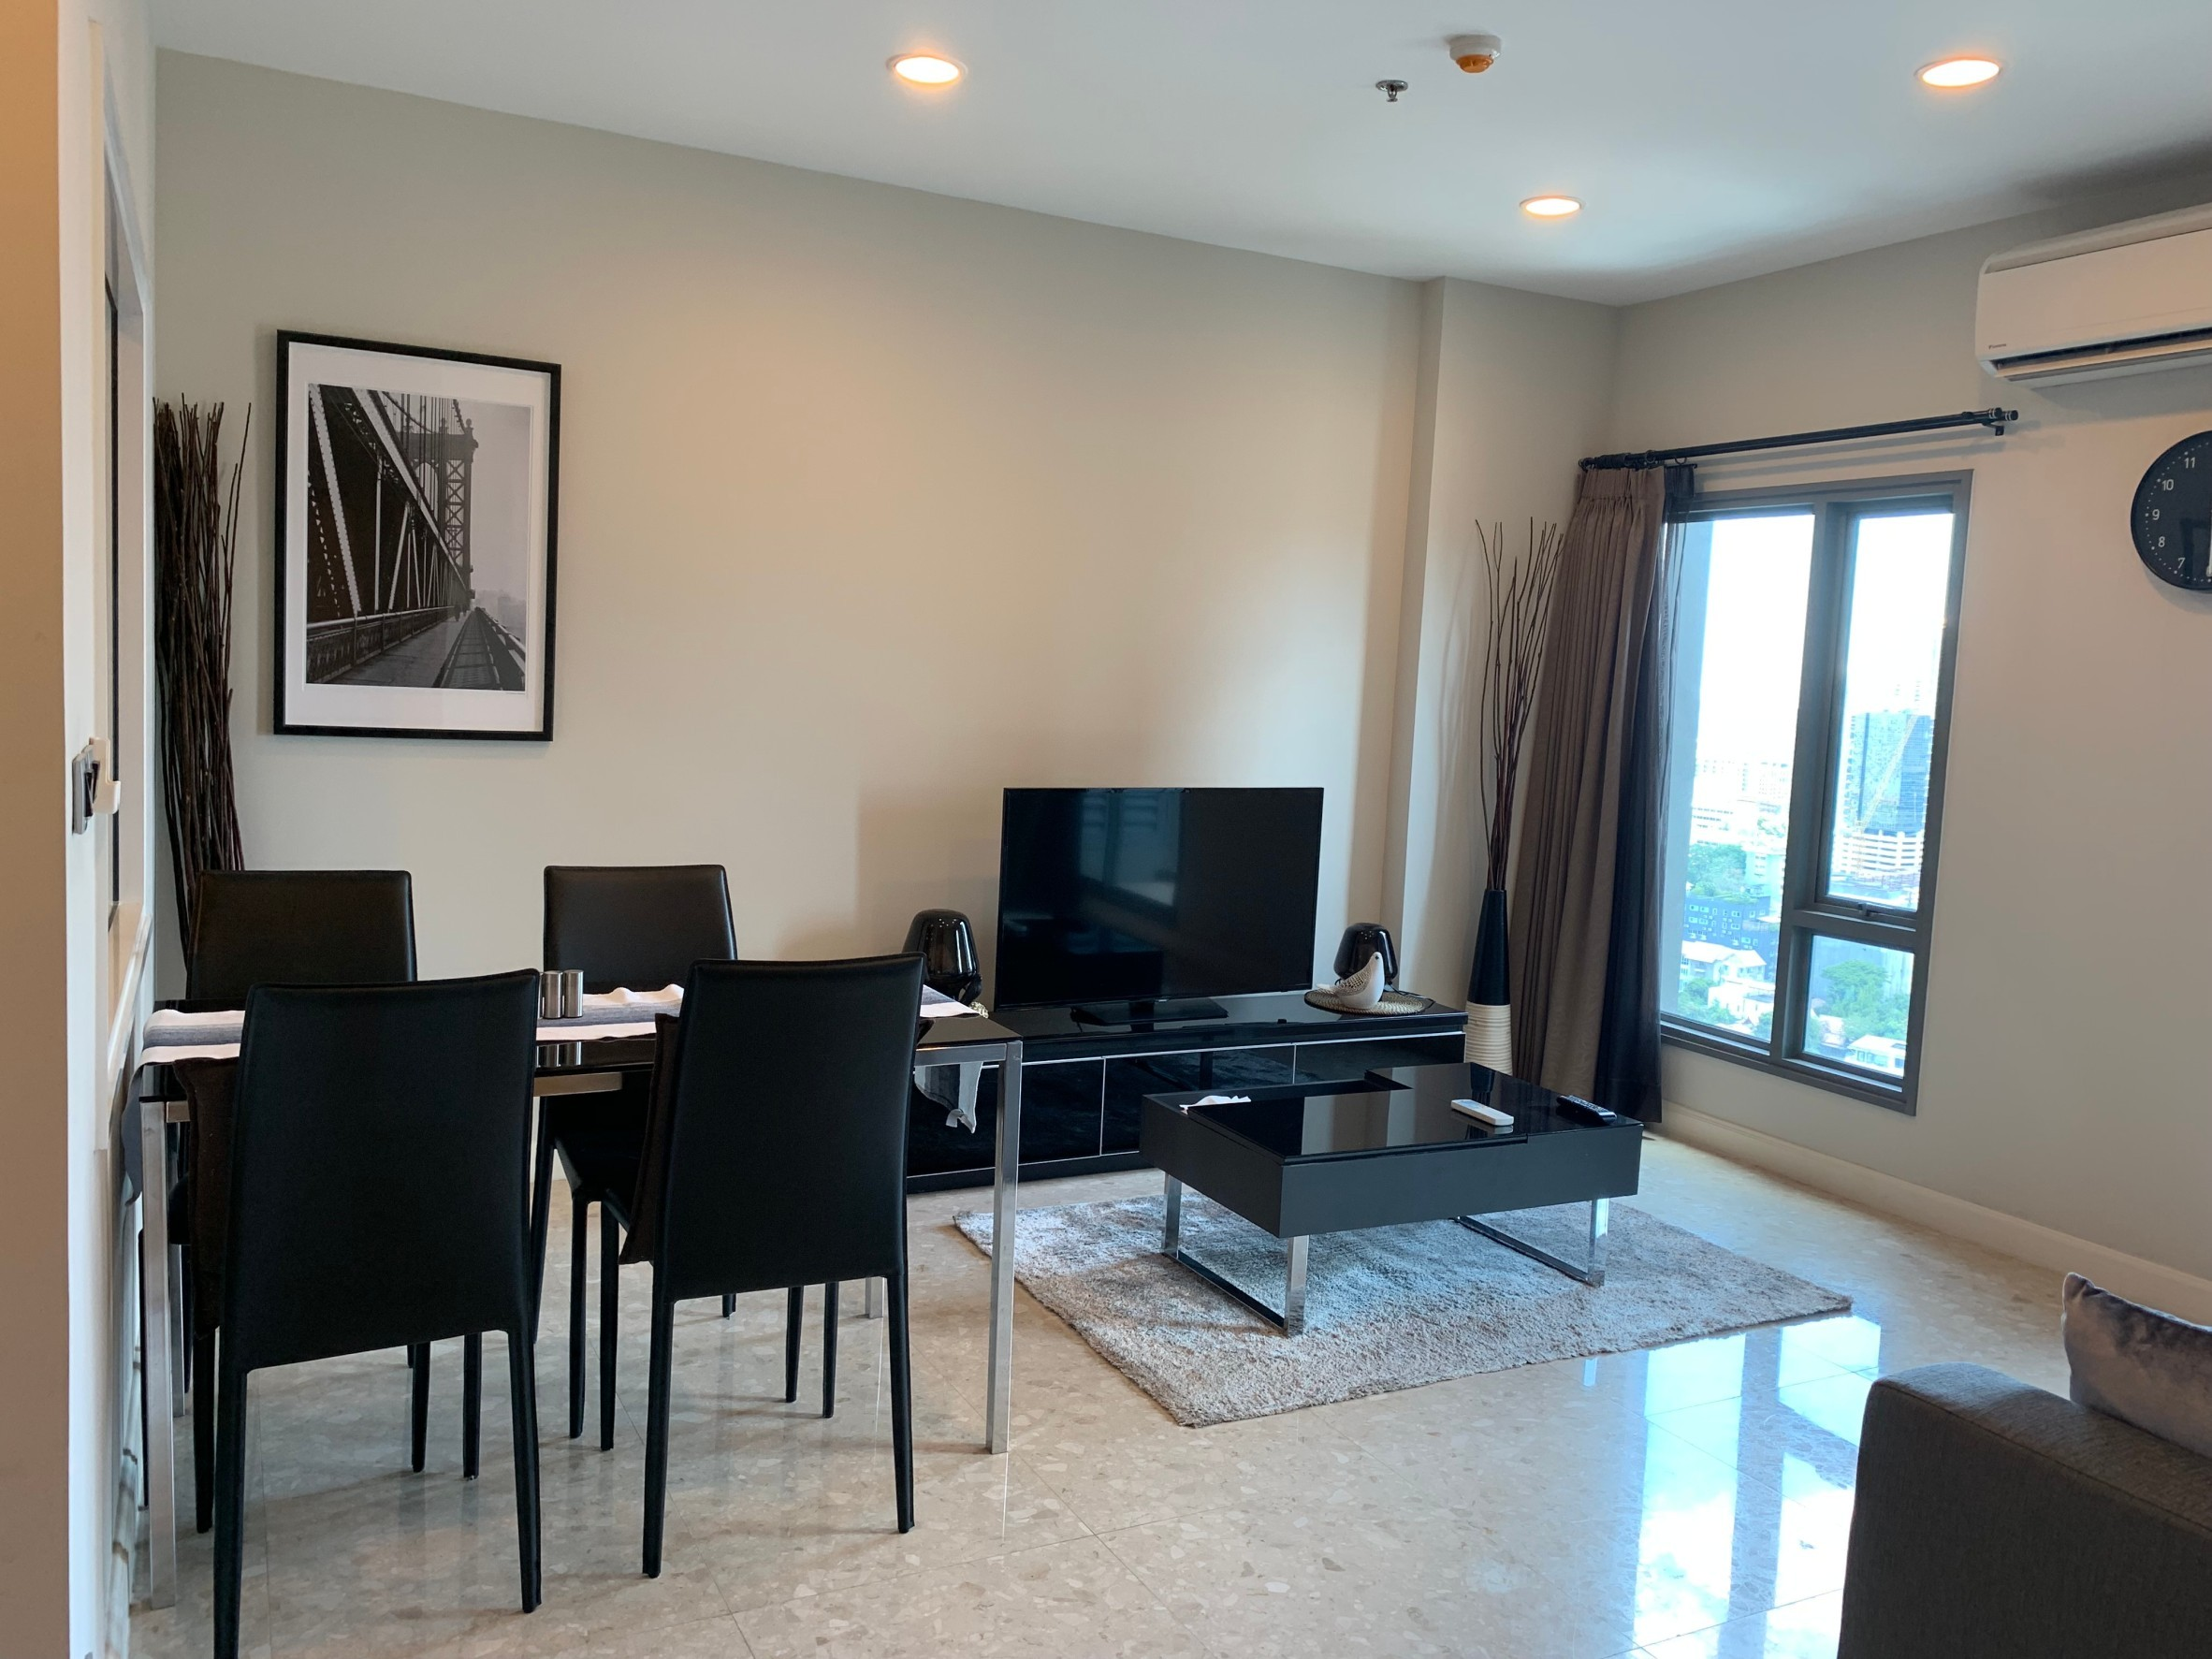 LTH3581 – The Crest Sukhumvit 34 FOR RENT 2 Beds 2 Baths size 70 SQ.M. Nearby BTS Thonglor station ONLY 55k/Month